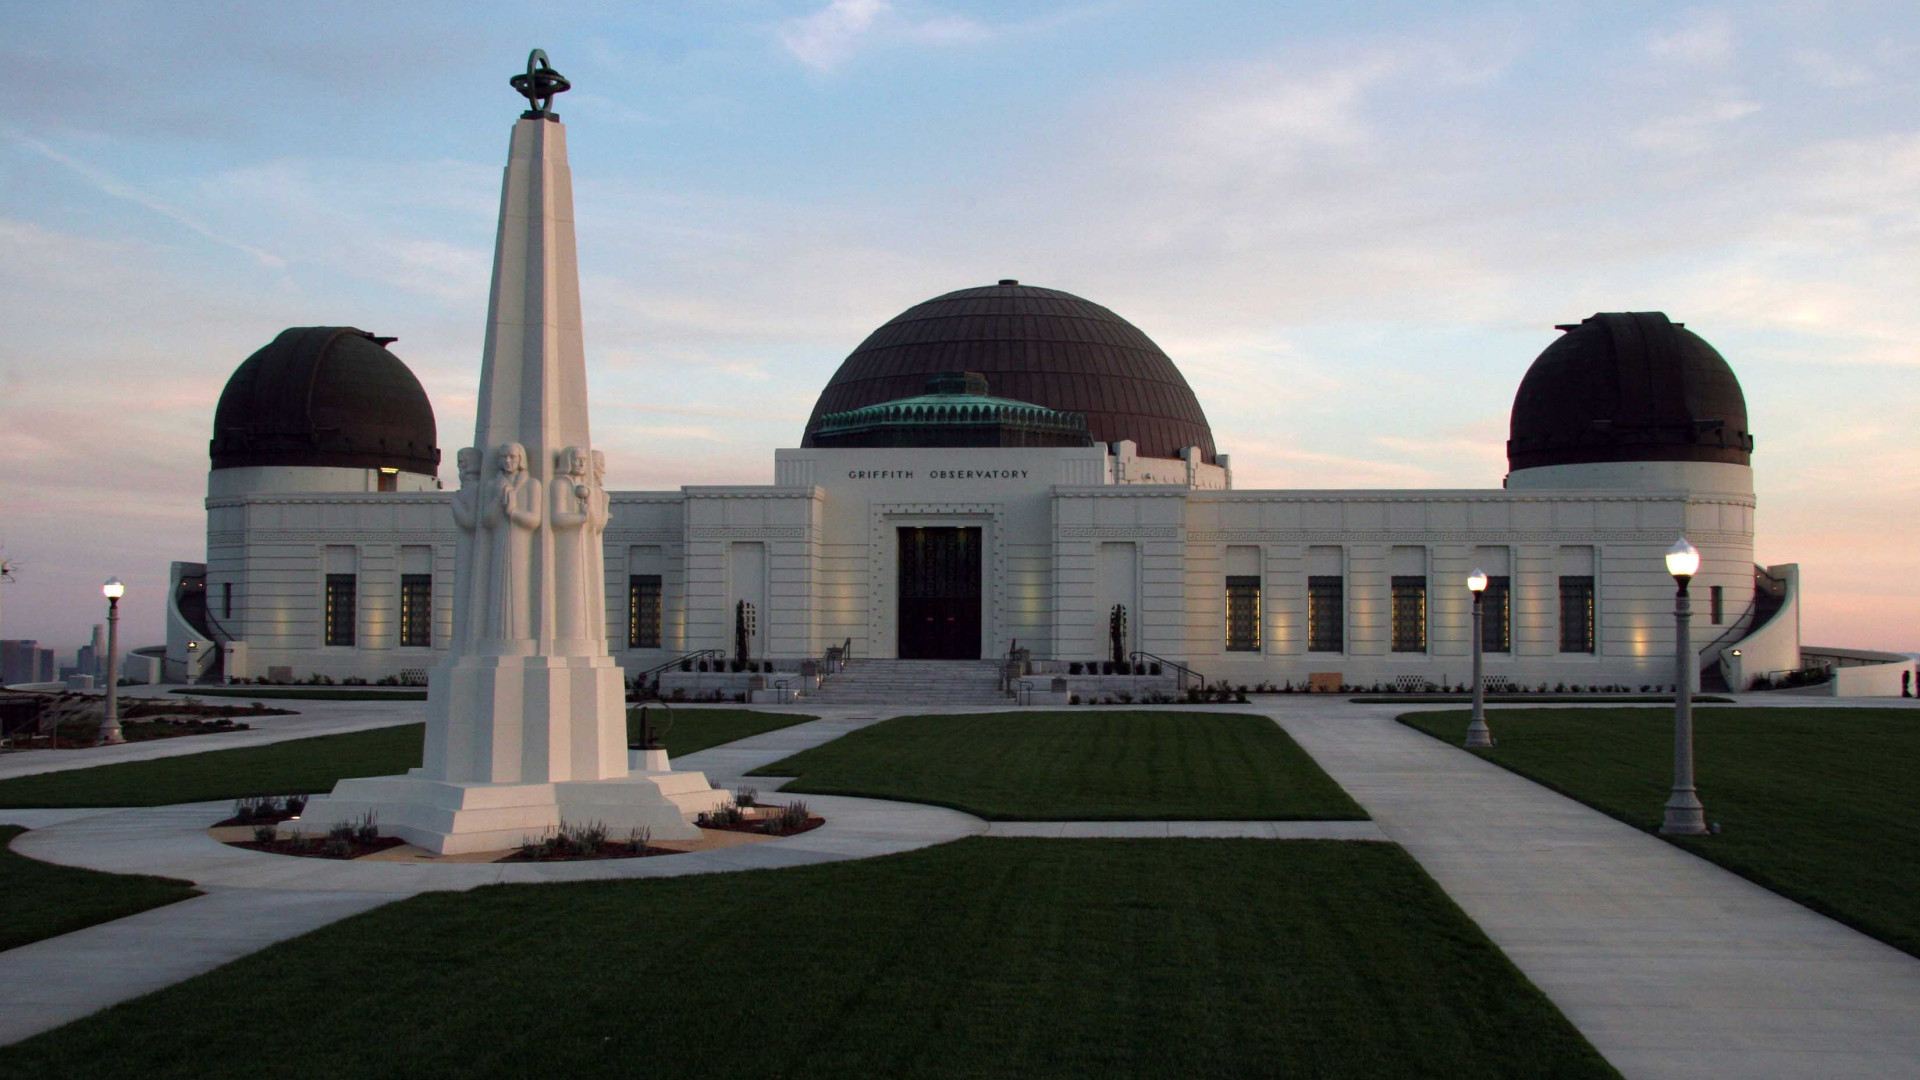 Griffith Observatory viewed from the north end of the lawn at dusk, March 2006